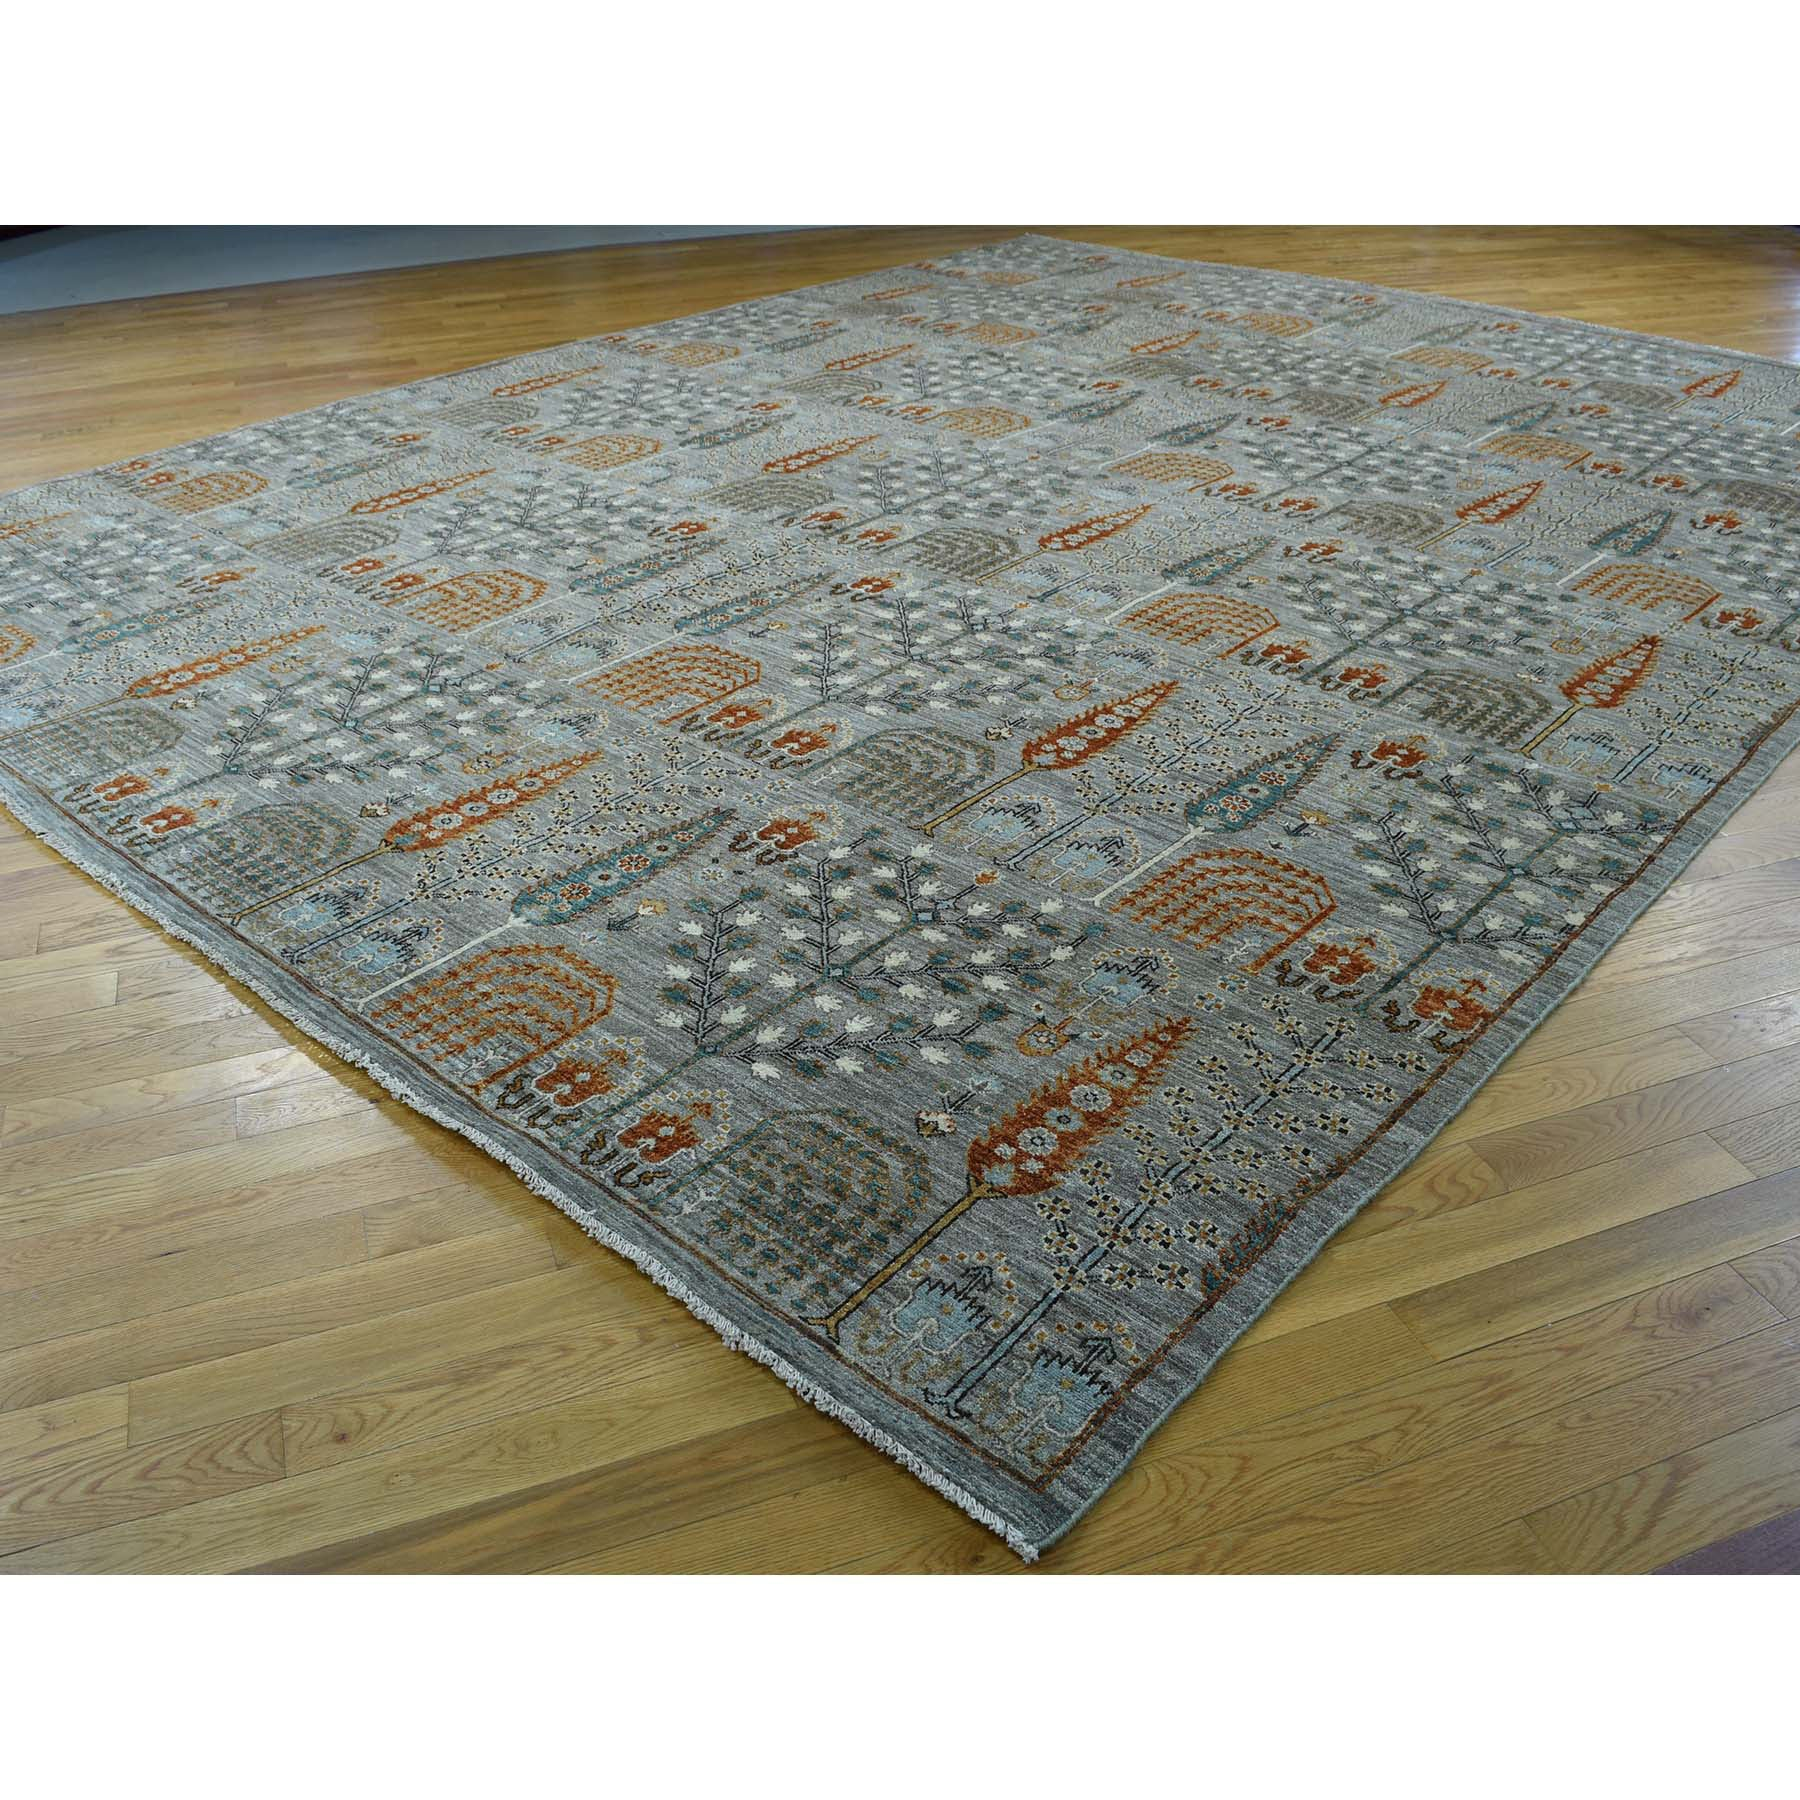 "Handmade Tribal & Geometric Rectangle Rug > Design# SH32782 > Size: 12'-0"" x 15'-2"" [ONLINE ONLY]"